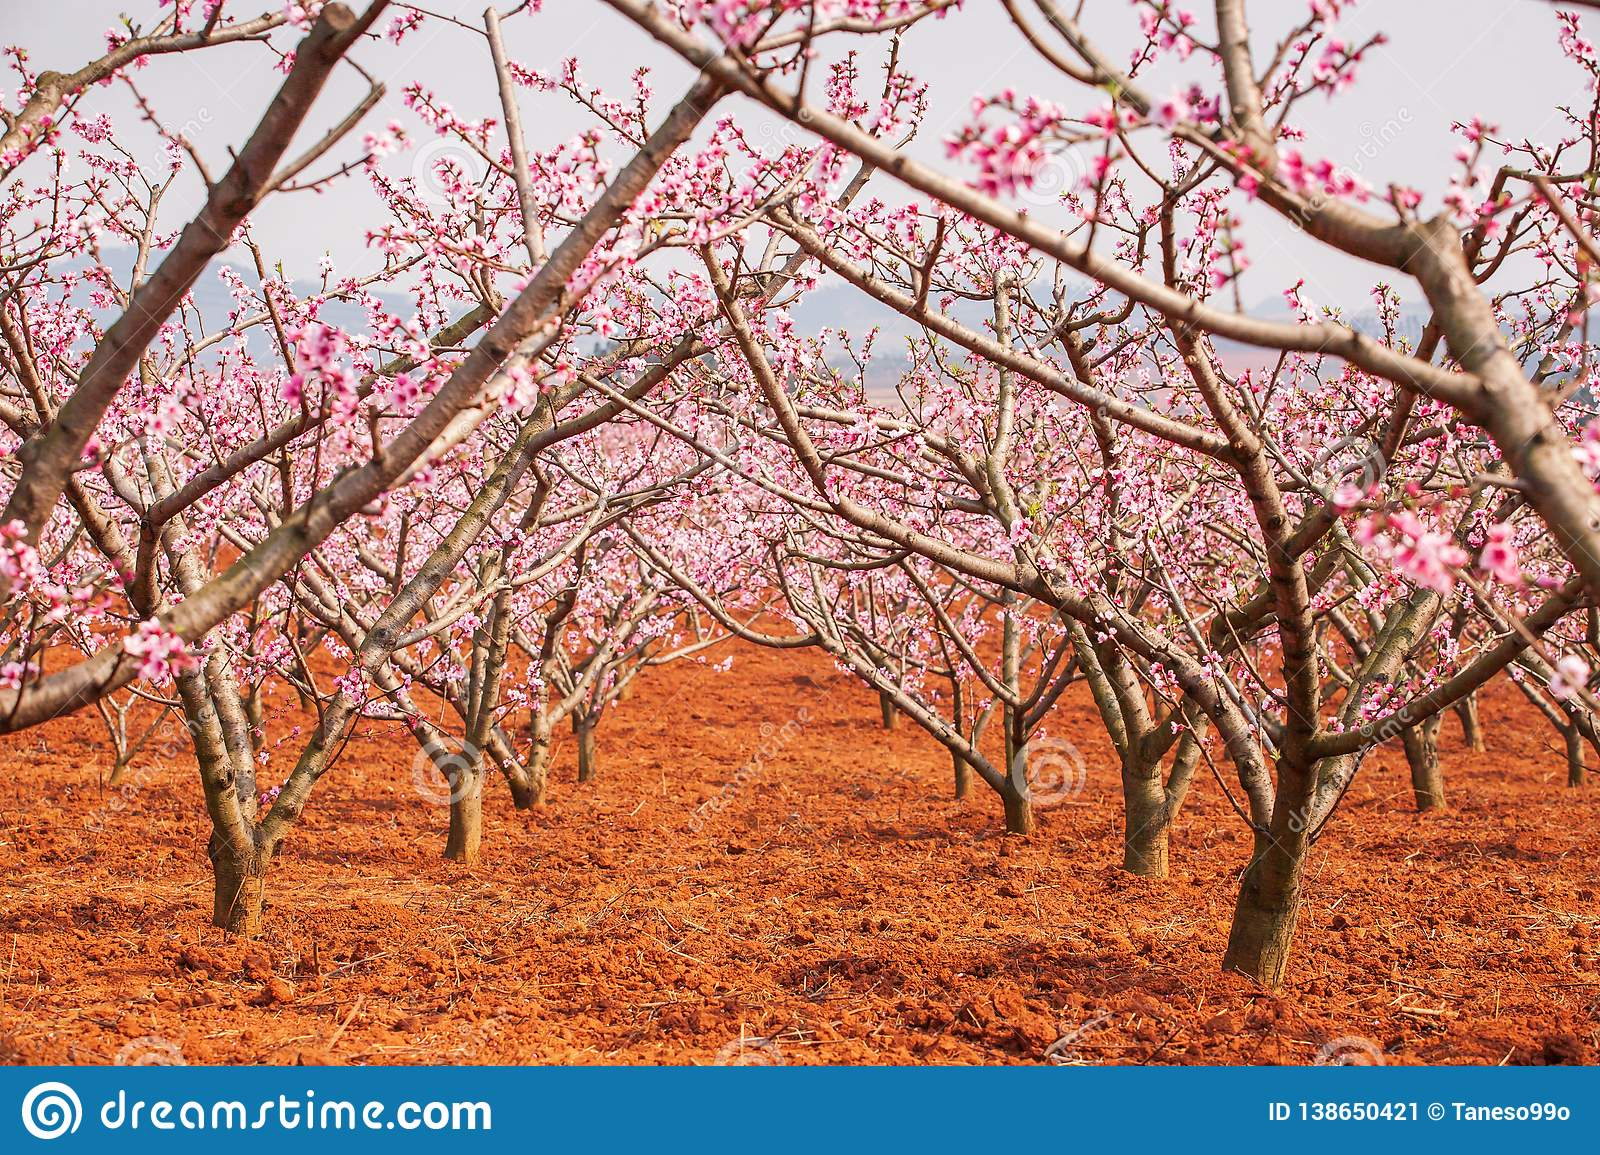 Red land and blooming Peach cherry in the branches of trees, pink flowers in full bloom. Spring blossom. Dongchuan, Kunming